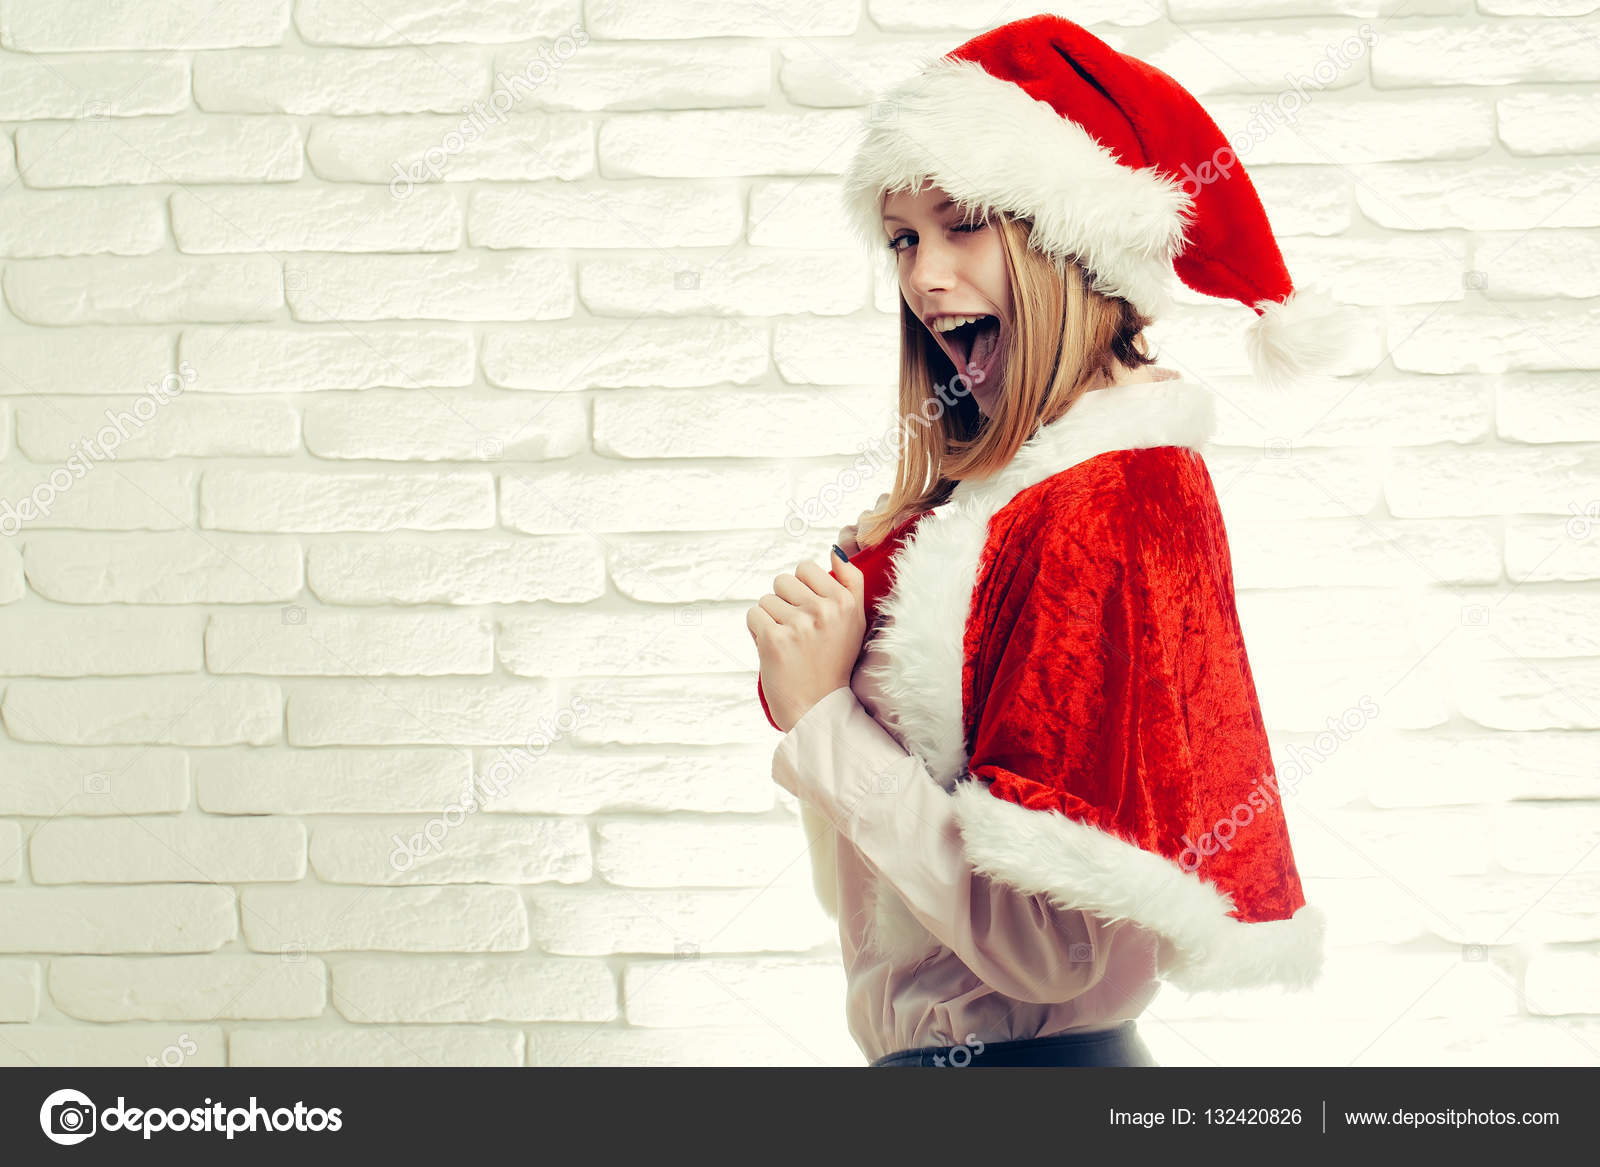 fc4a477f92 Young sexy new year woman or cute smiling girl with pretty happy face  winking in red christmas santa claus holiday hat and coat on white brick  wall ...